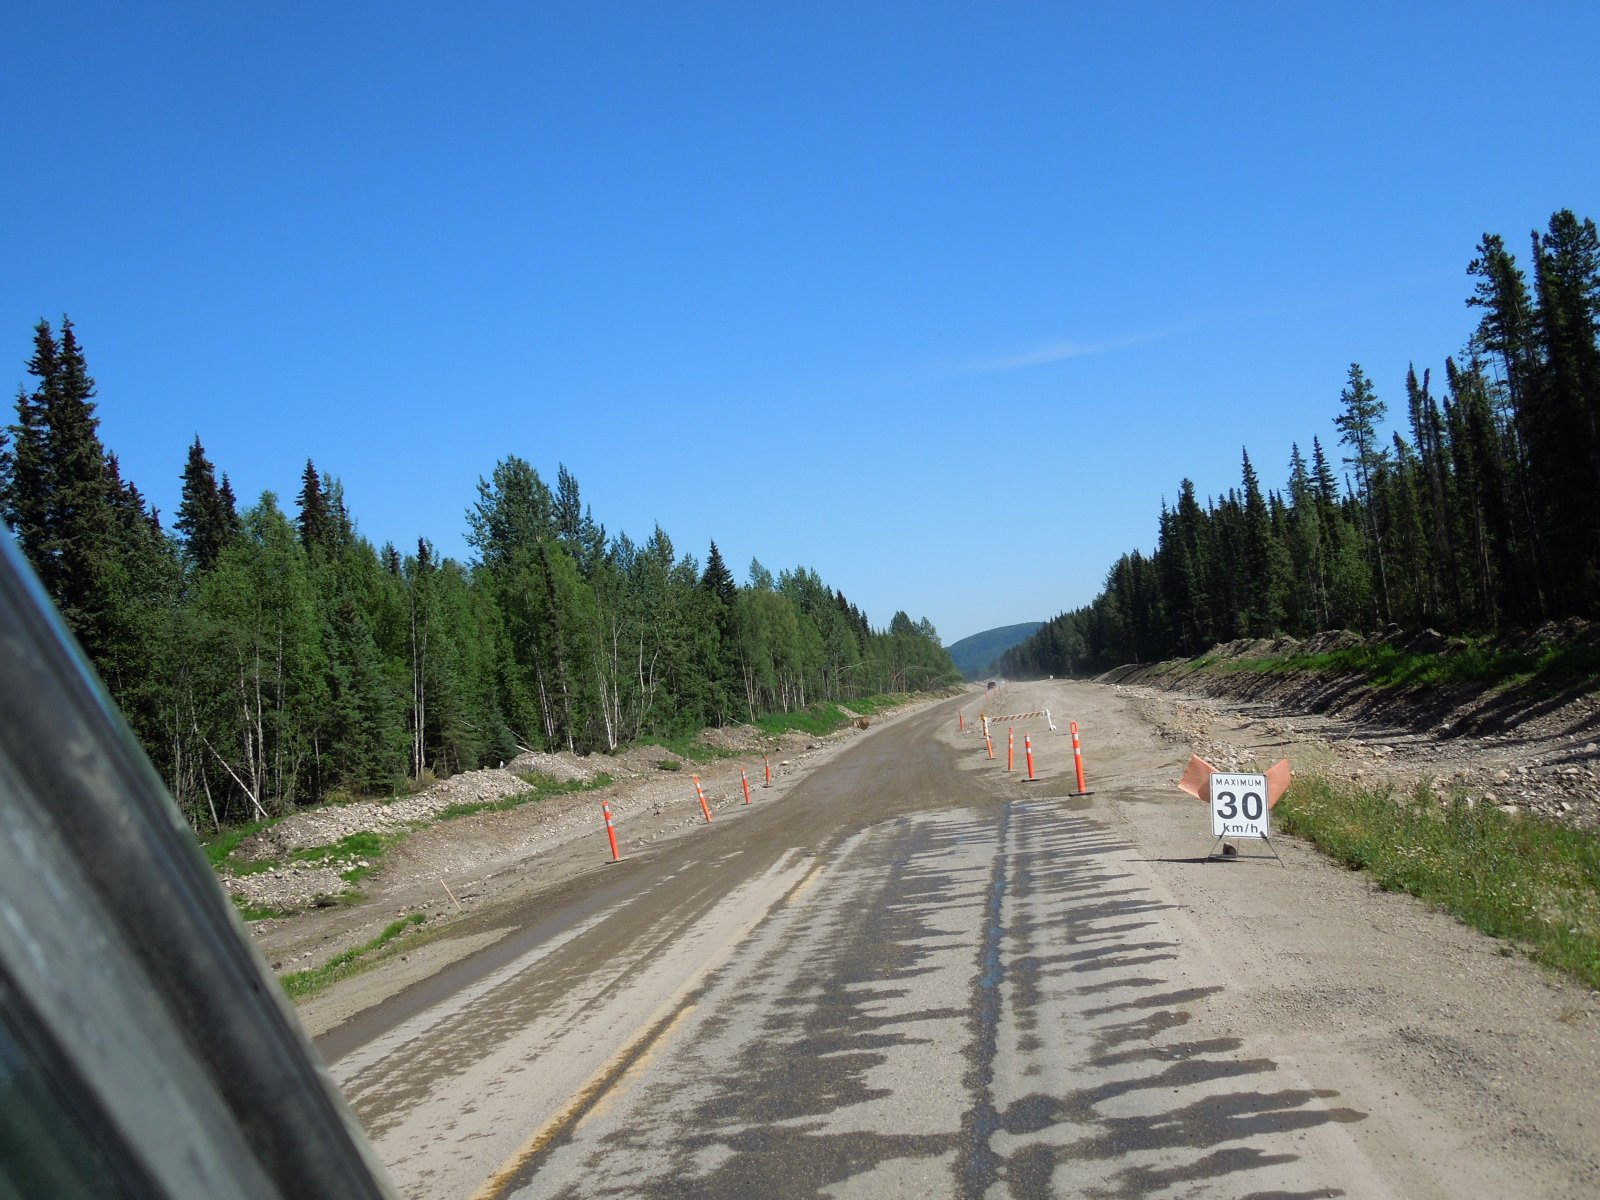 Click image for larger version  Name:Liard Hot Springs to Ft. Nelson to Ft. St. John 206.jpg Views:53 Size:349.5 KB ID:222152